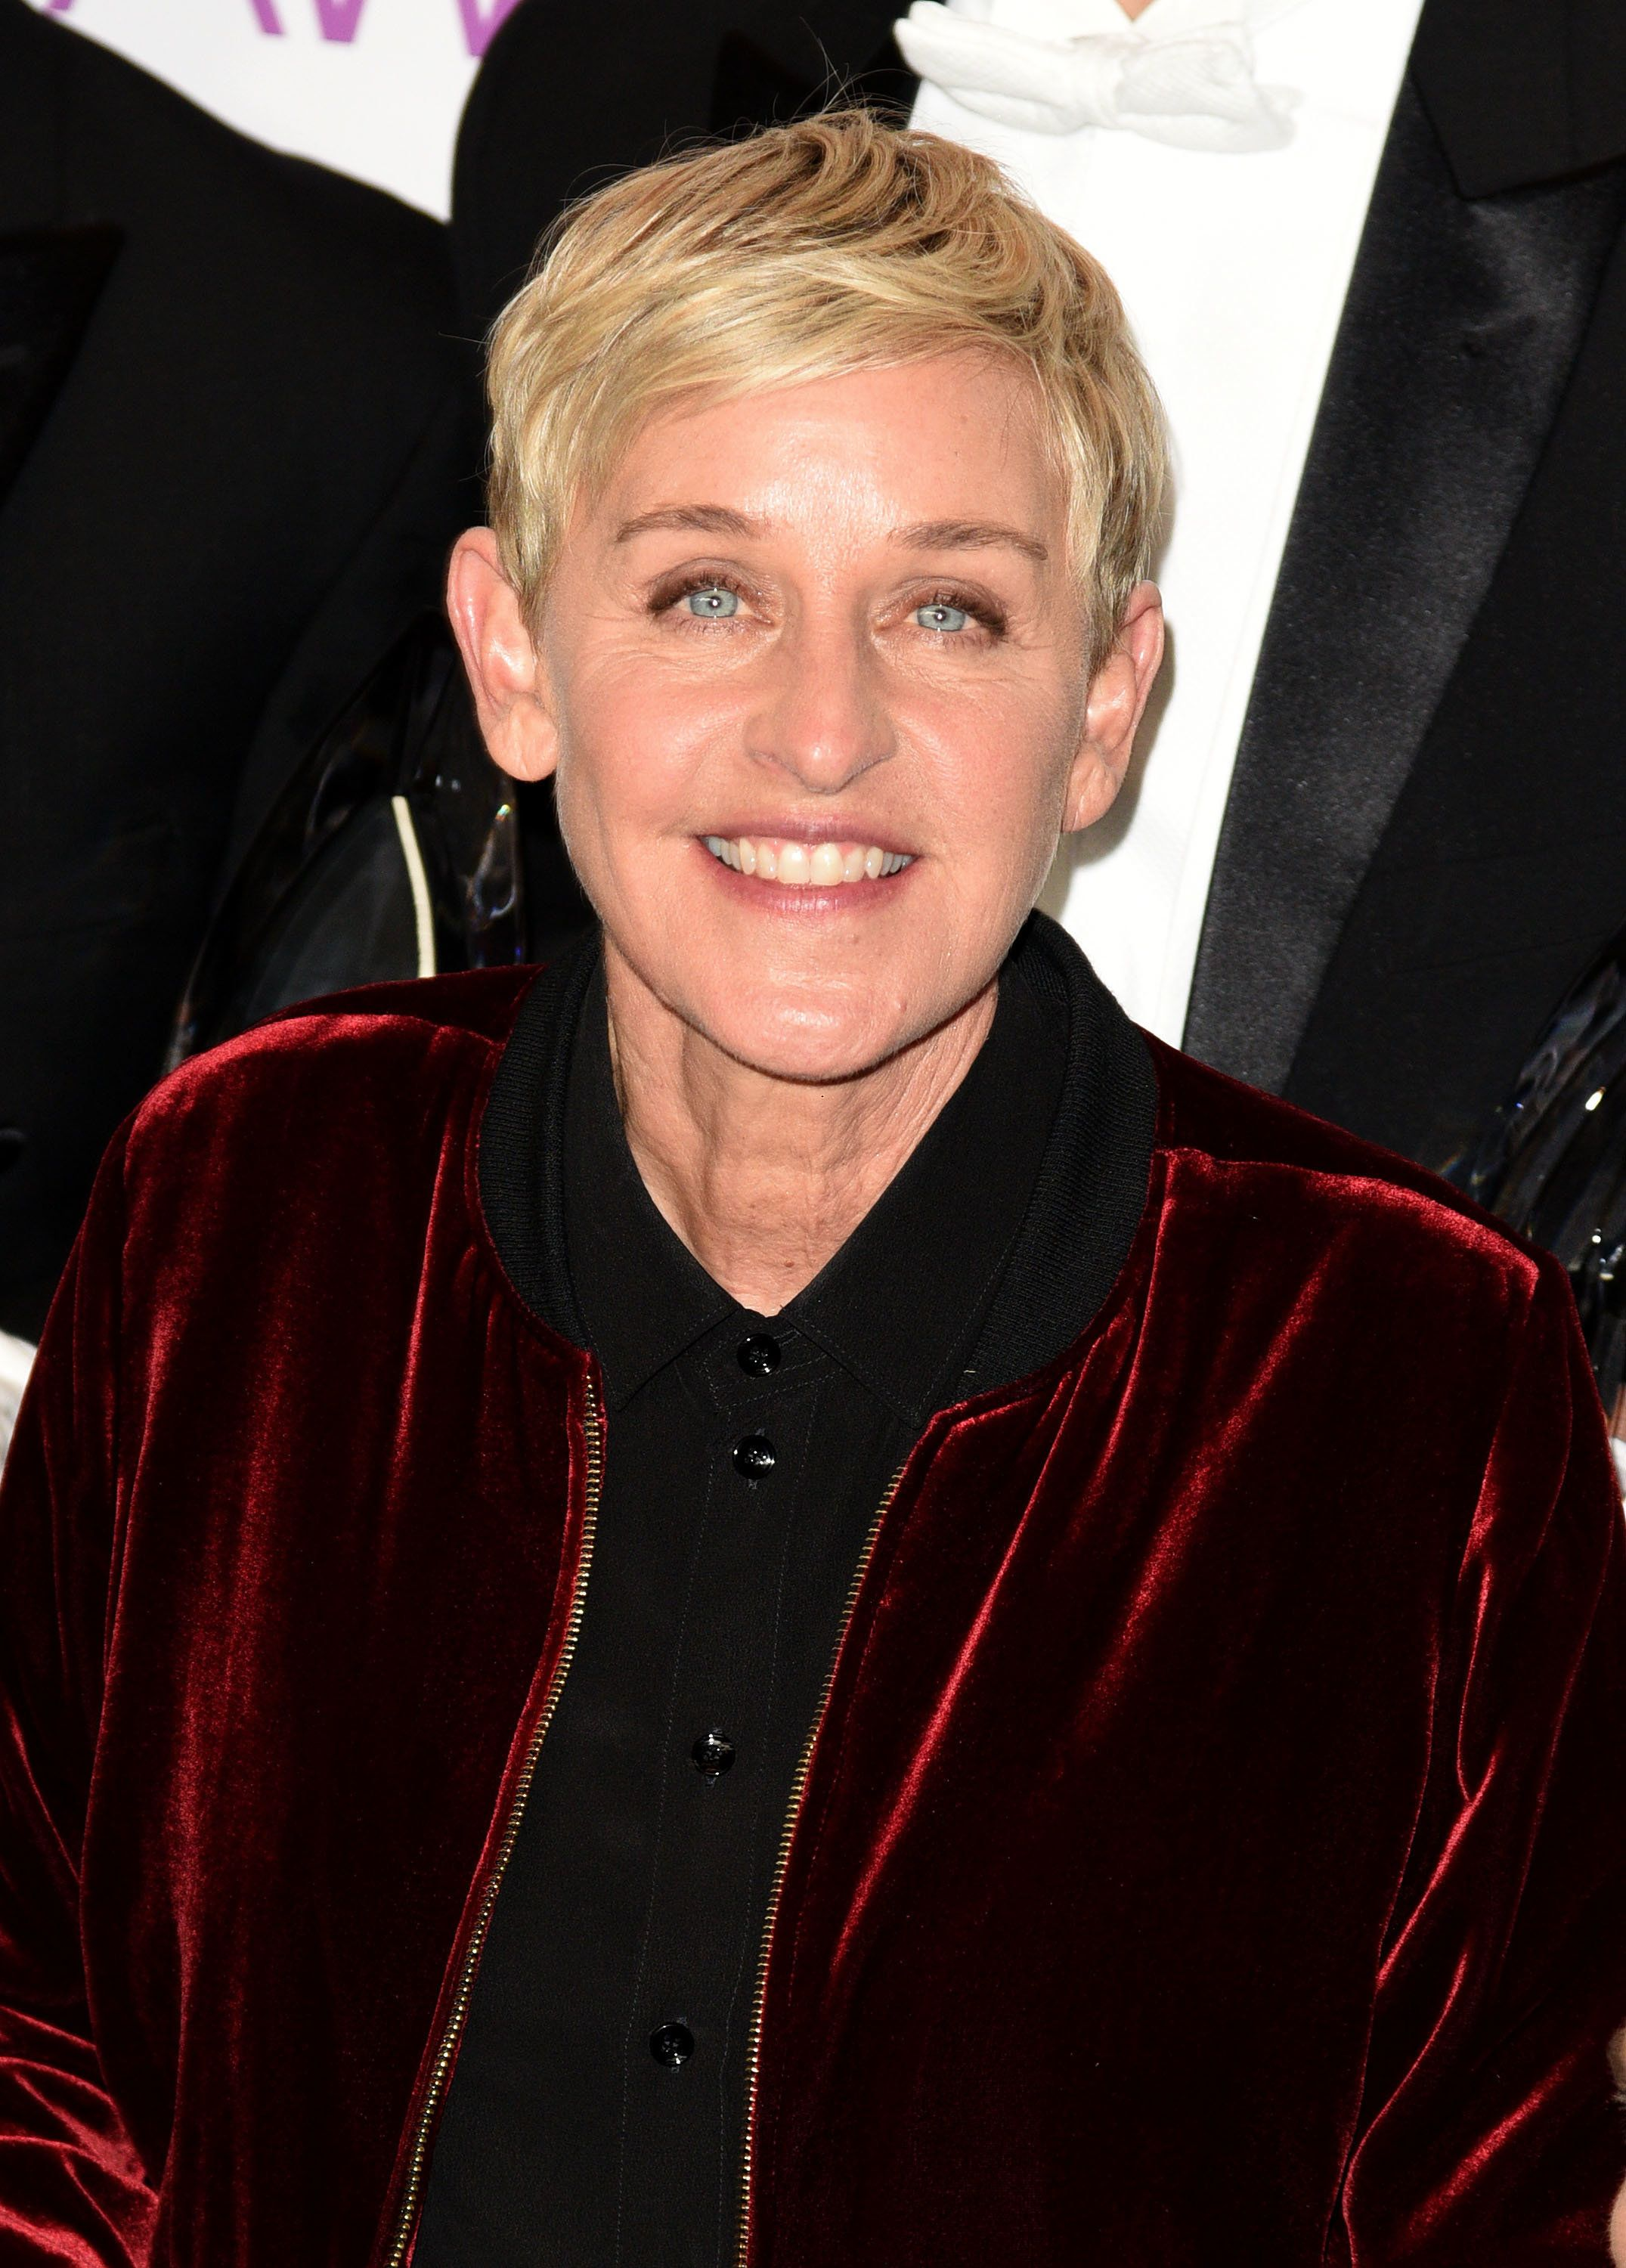 LOS ANGELES, CA - JANUARY 18:  Ellen DeGeneres poses at the People's Choice Awards 2017 at Microsoft Theater on January 18, 2017 in Los Angeles, California.  (Photo by C Flanigan/Getty Images)